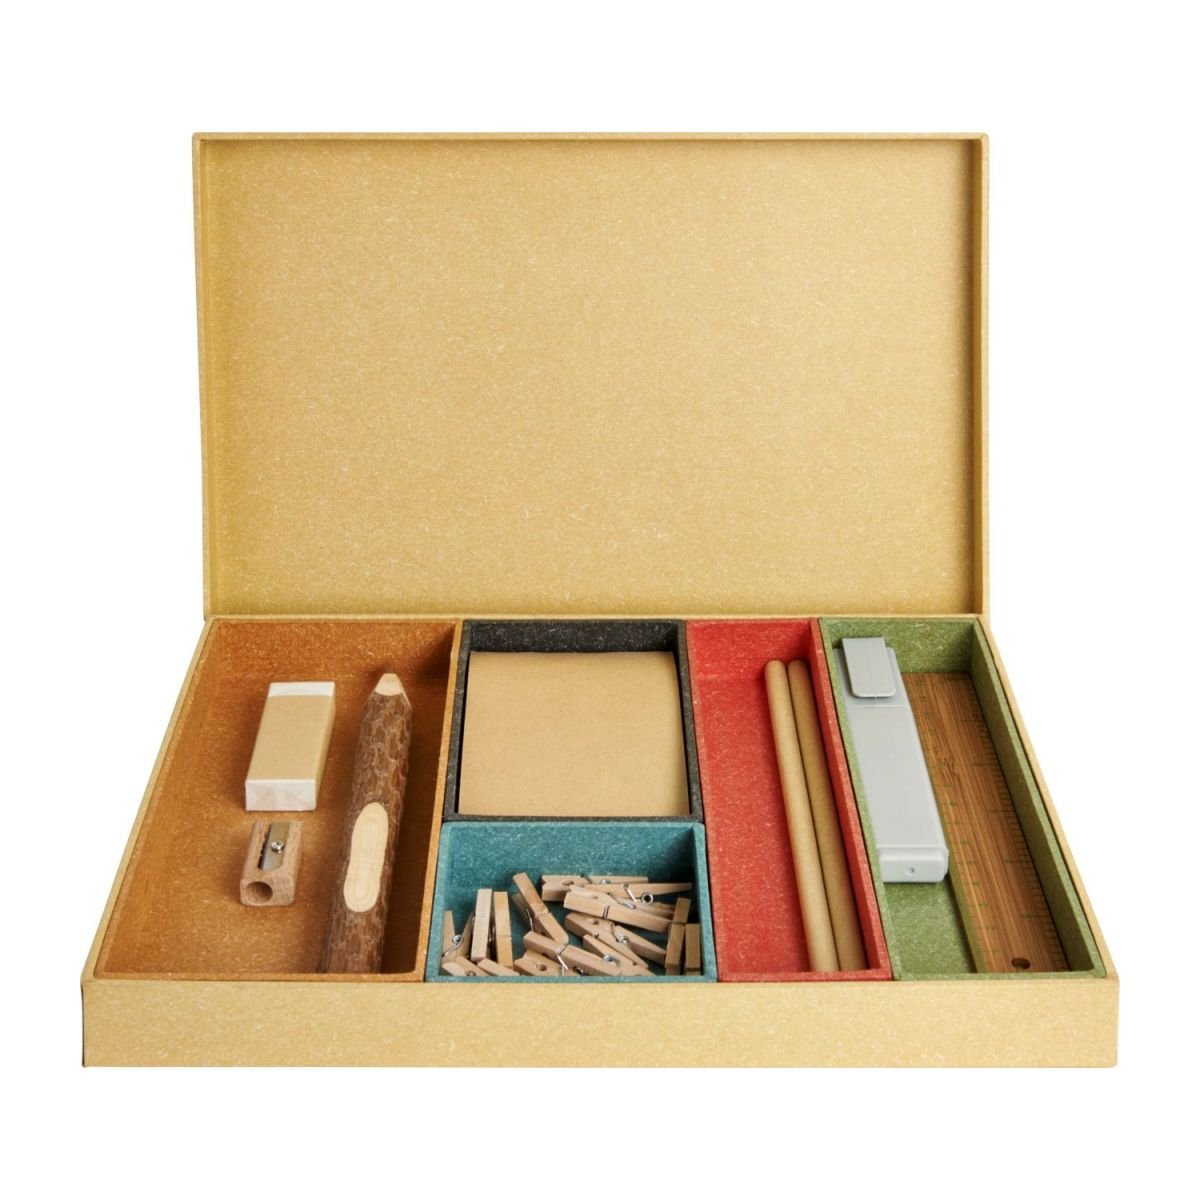 Stationery box (10 pieces) n°3